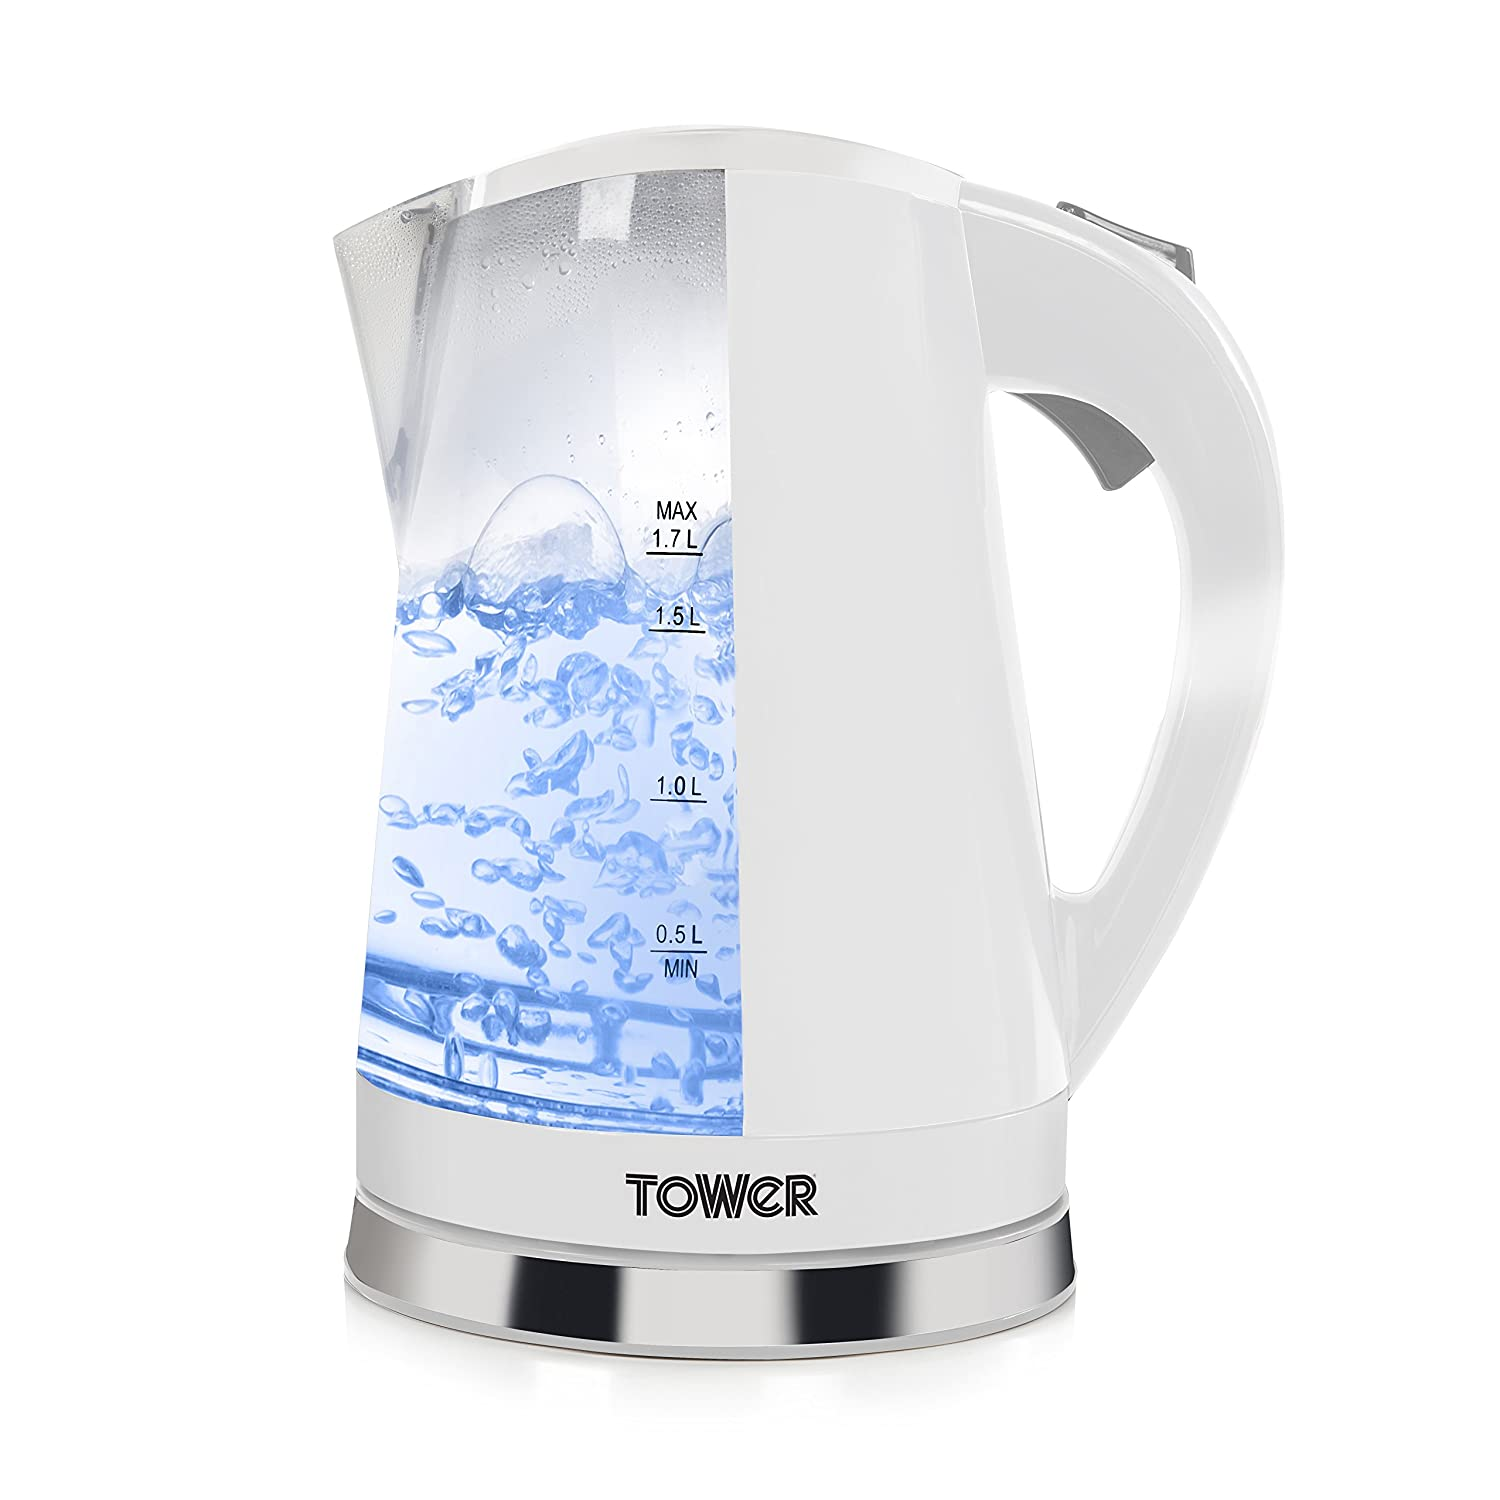 Tower LED Colour Changing Light Up Kettle 2200w 1.7 Litre In Black T10012